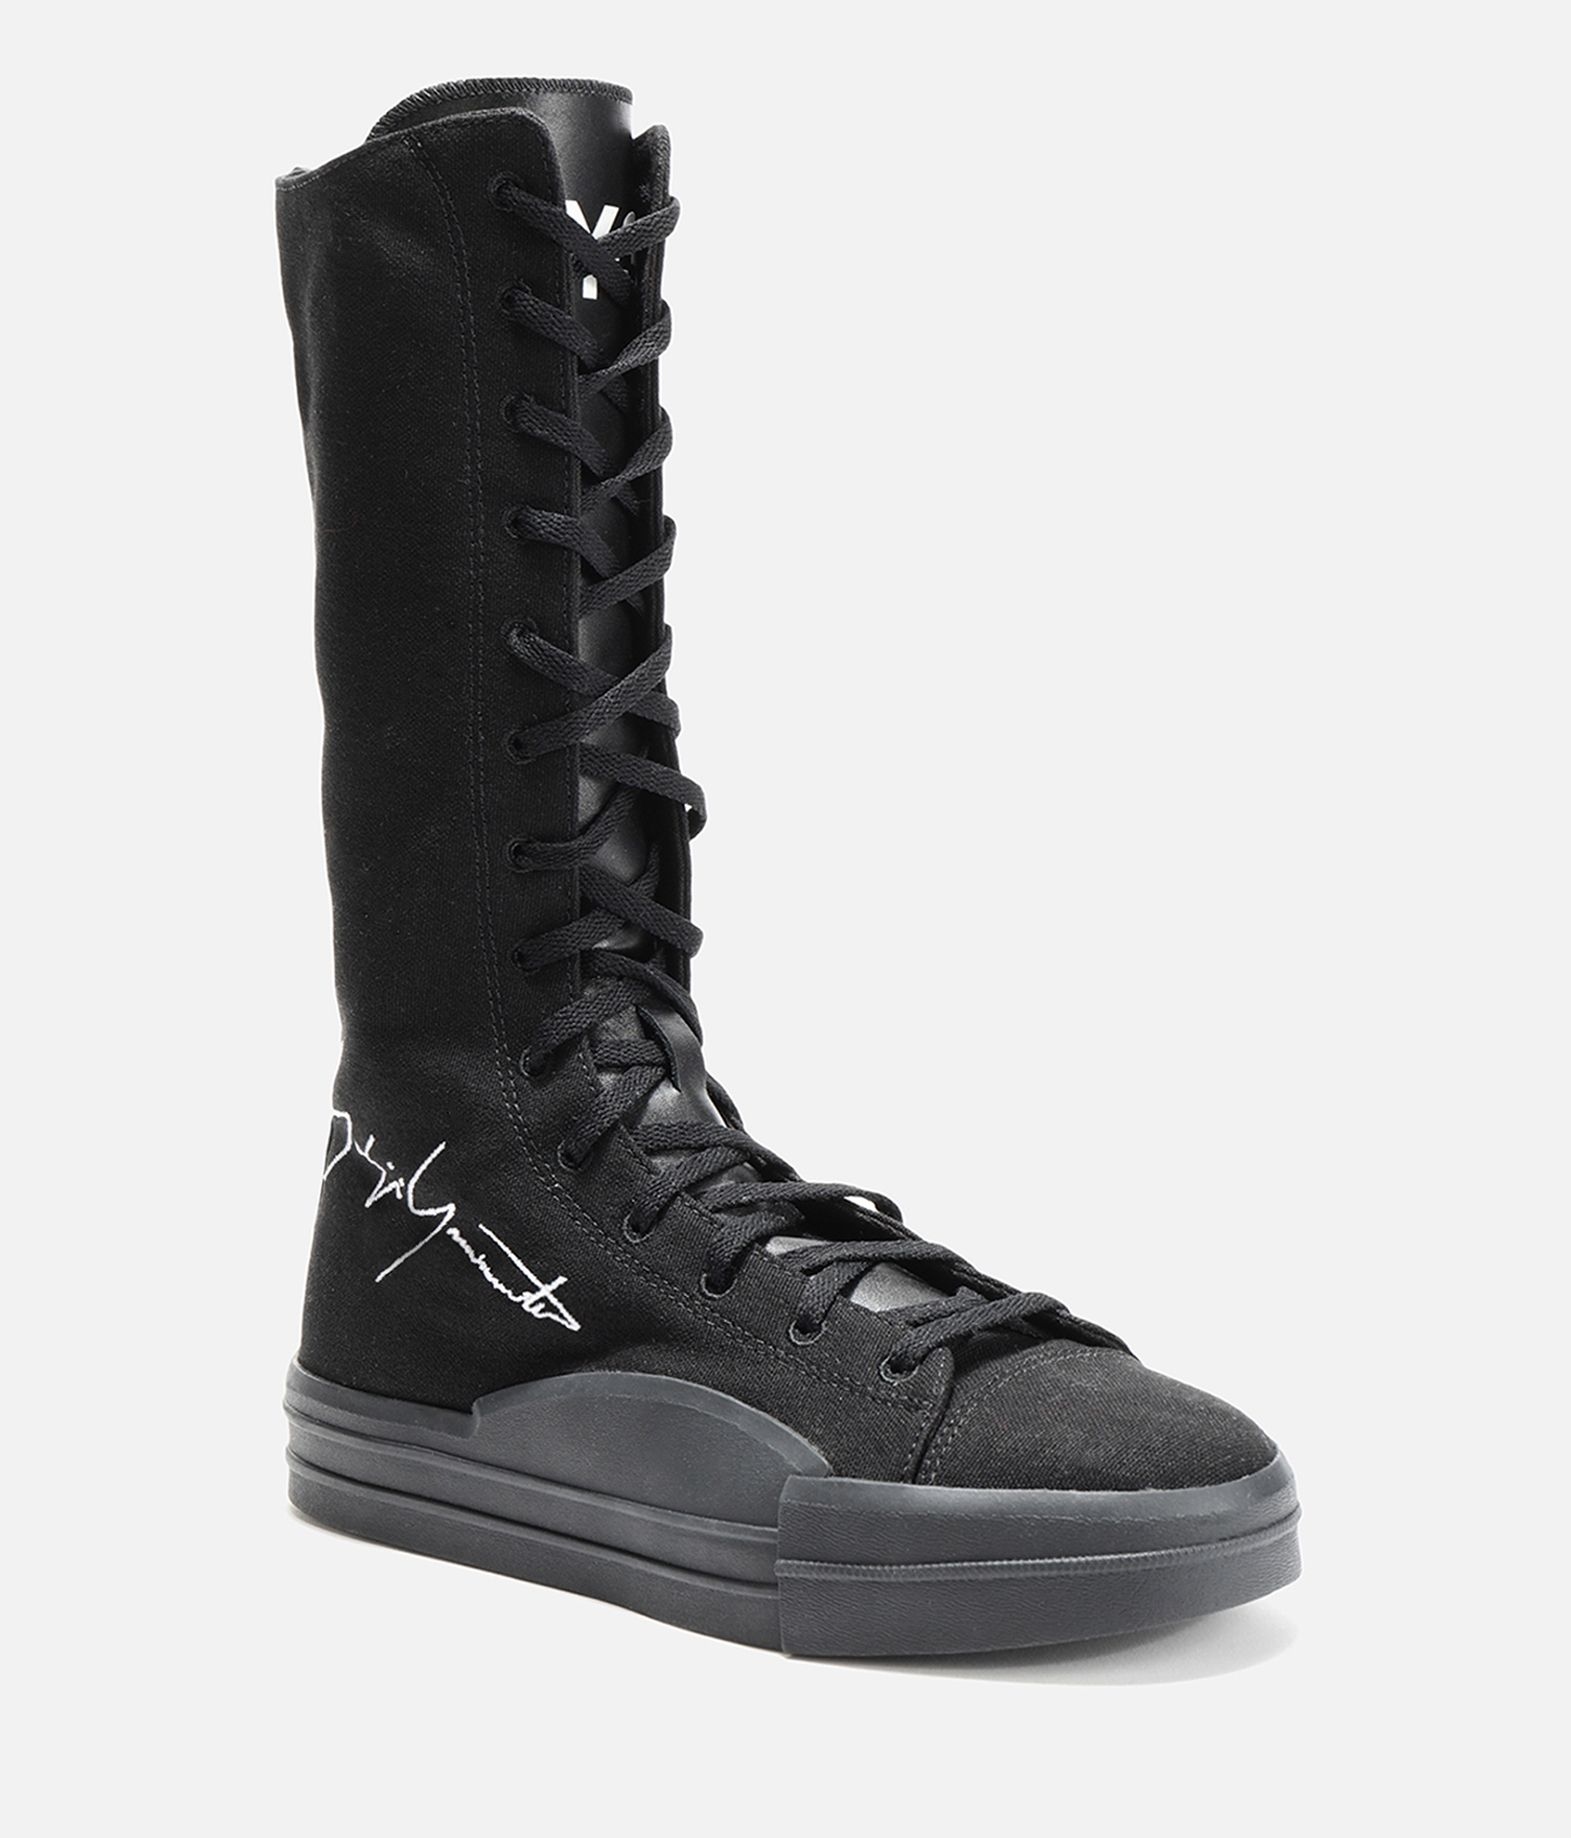 Y-3 Y-3 Yuben Boot High-top sneakers Woman e